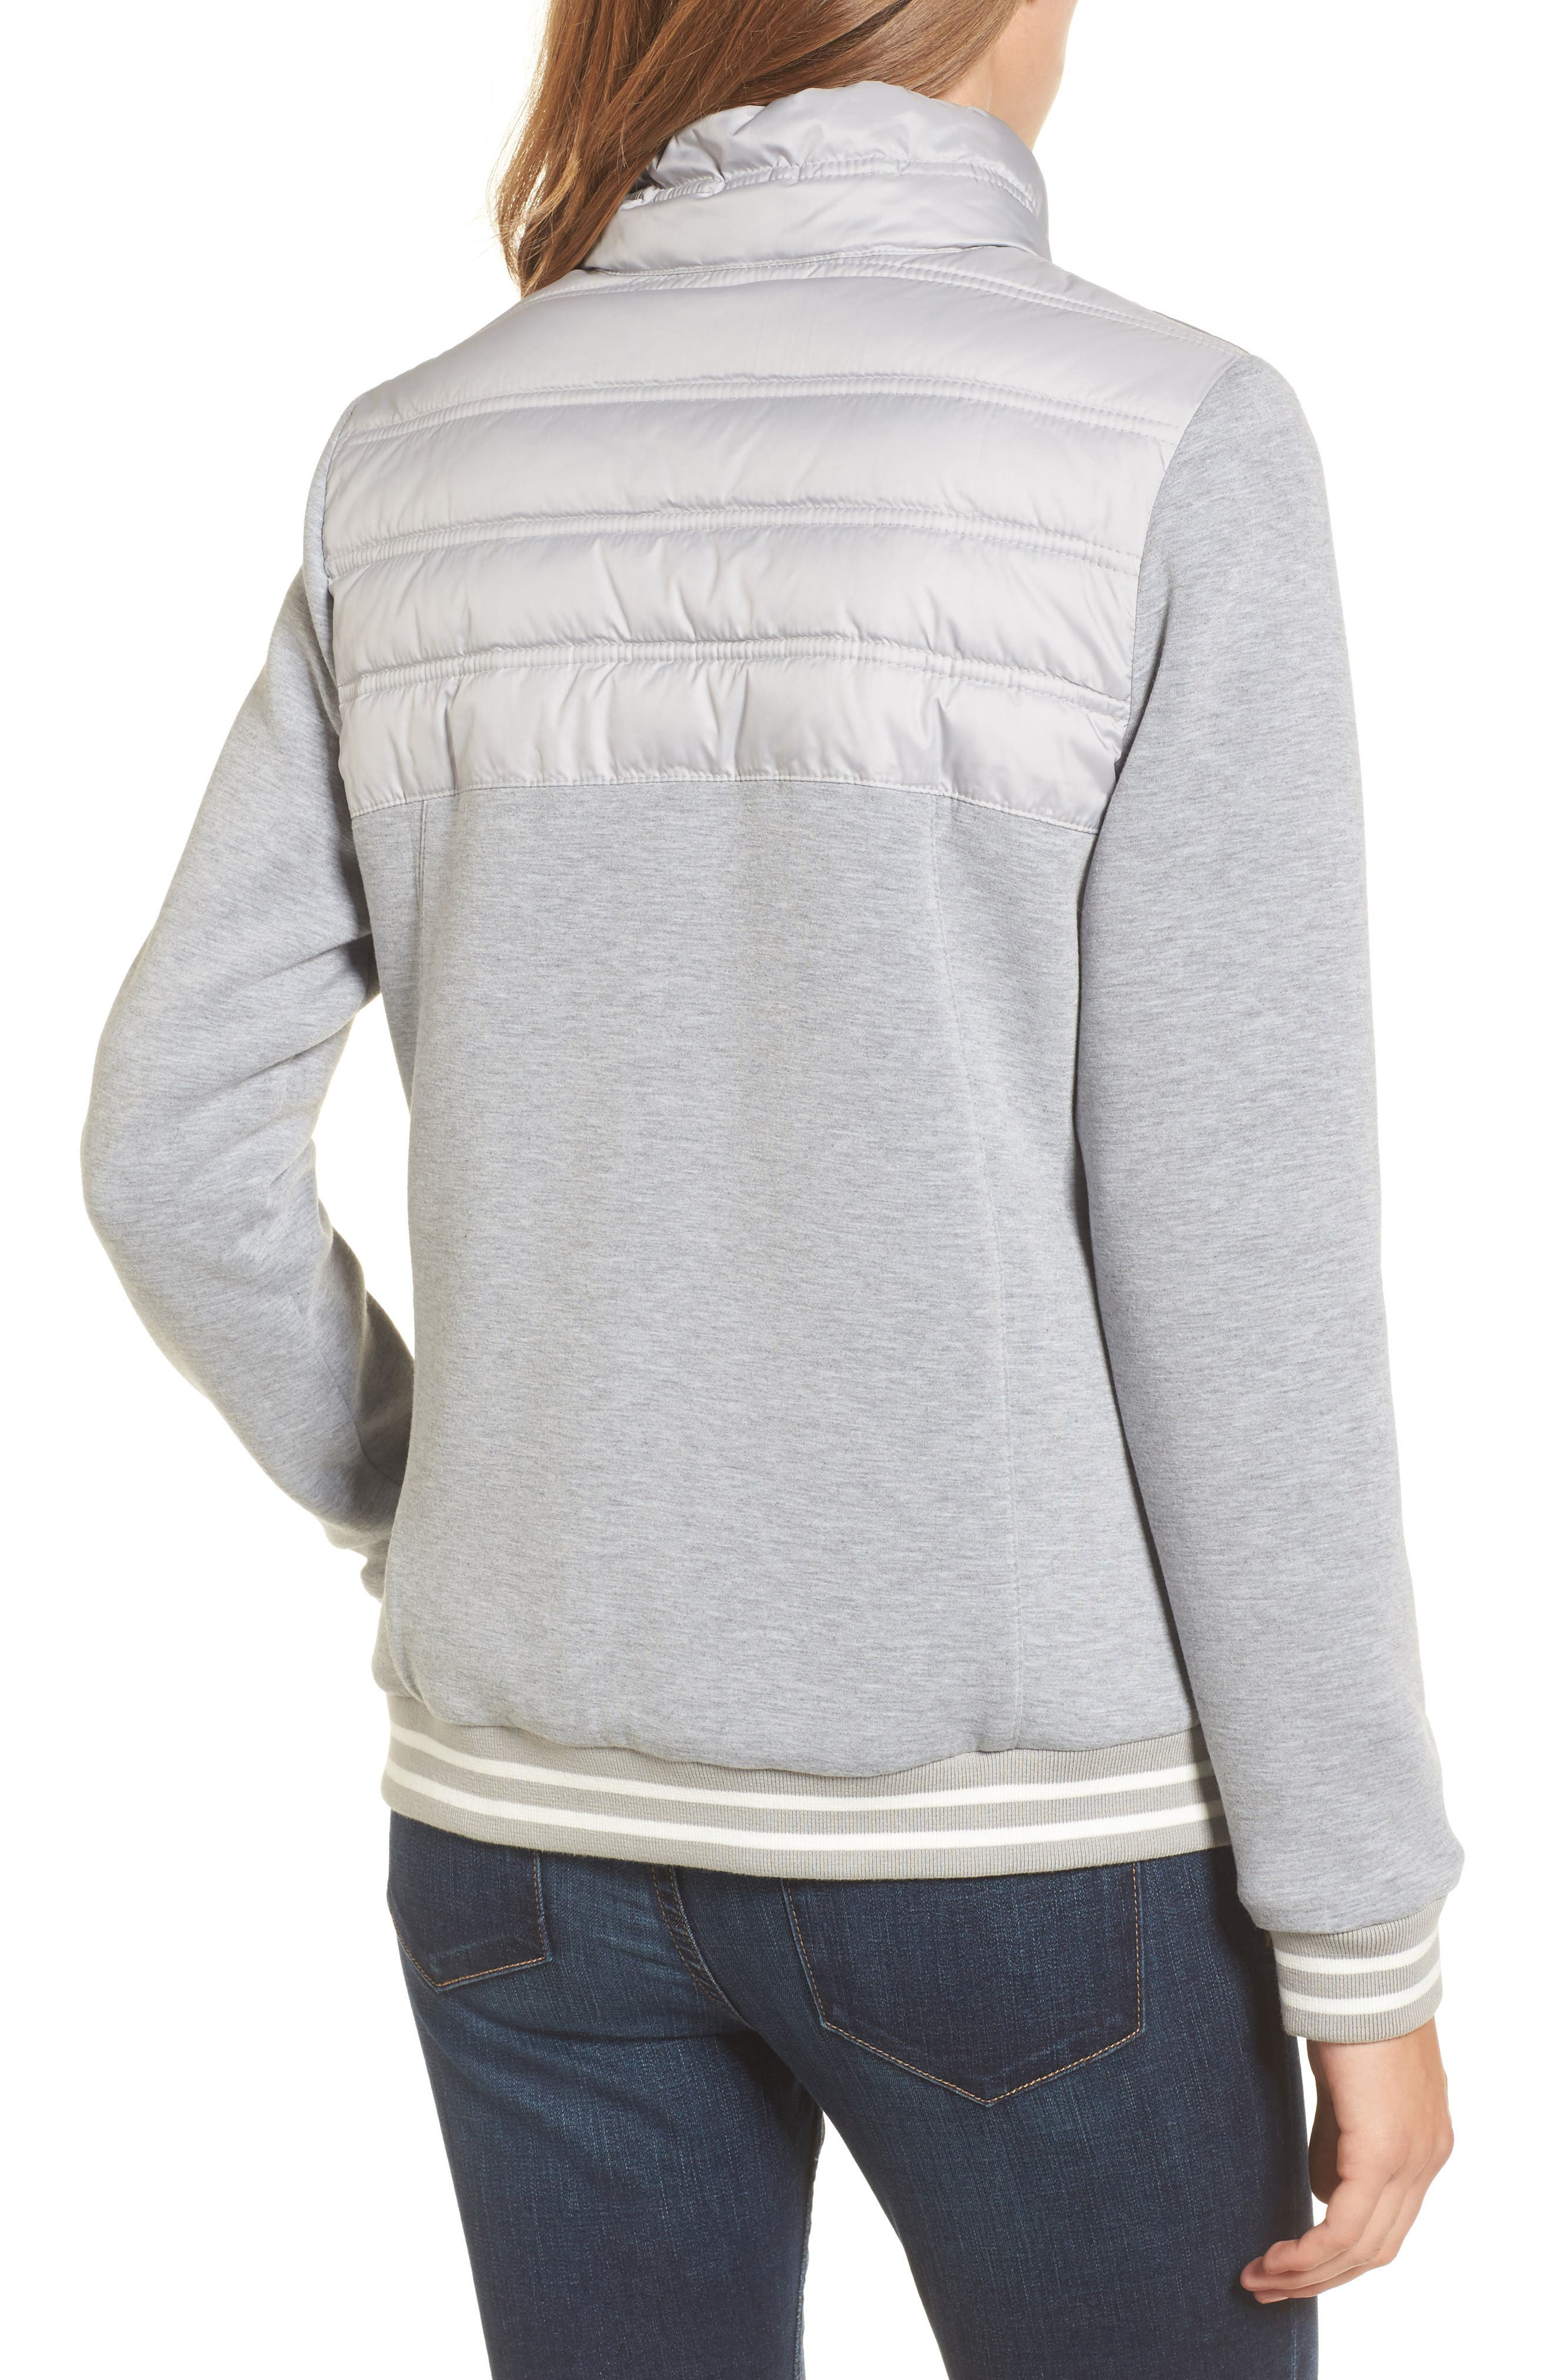 Selsey Zip Sweater,                             Alternate thumbnail 2, color,                             050